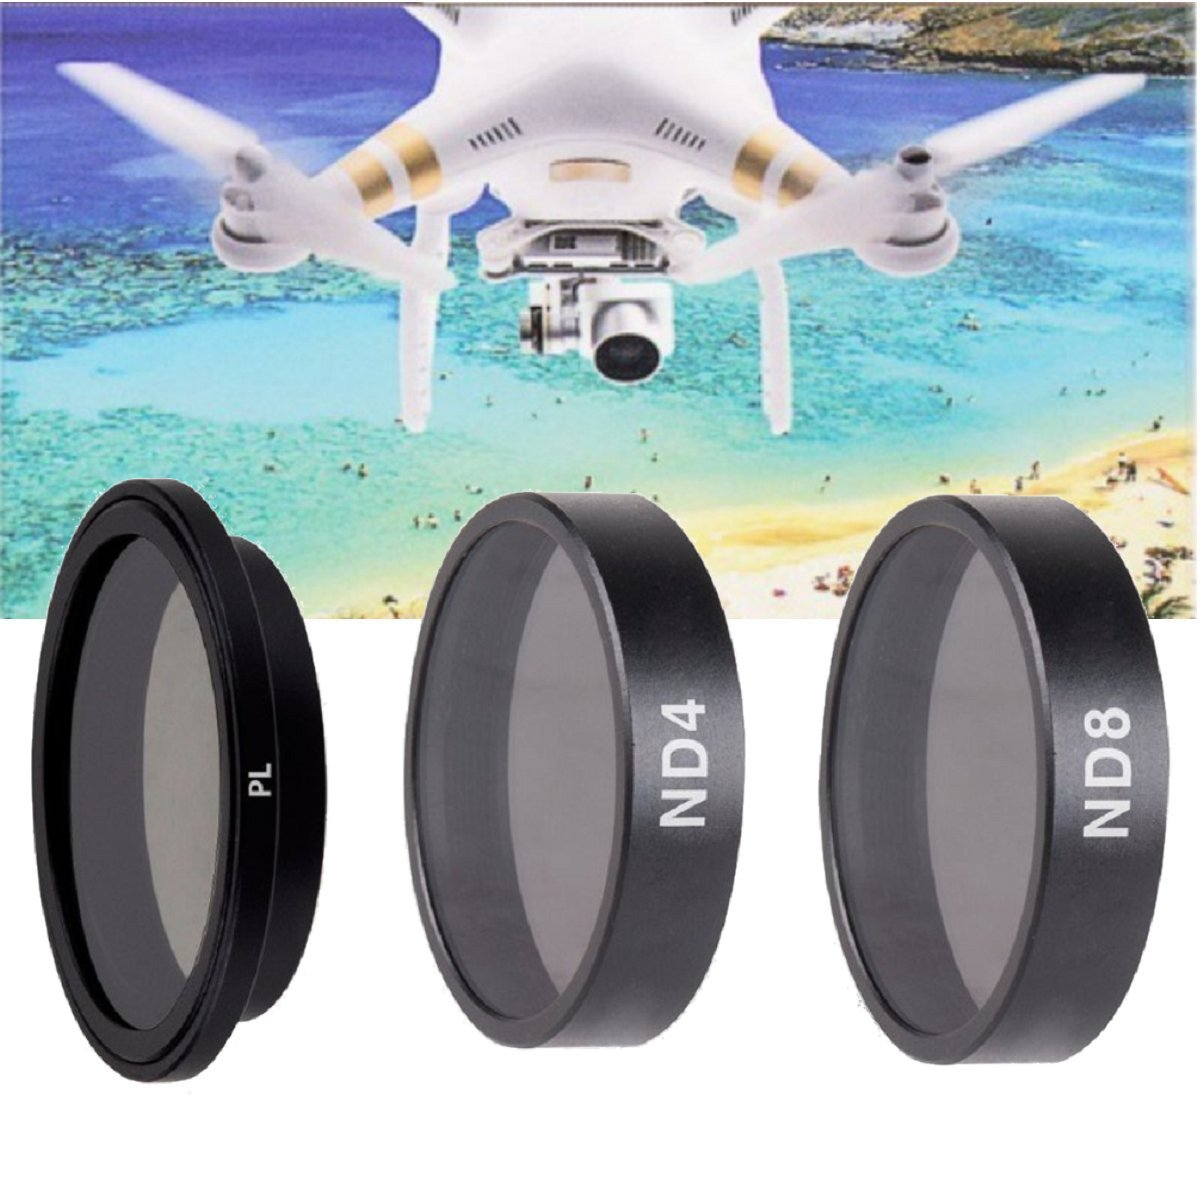 3 Piece Filter Kit (PL-ND4-ND8) for DJI Phantom 3 4K, DJI Phantom 3 Standard, DJI Phantom 3 Advanced, DJI Phantom 3 Pro, Phantom 4 Quad-copters